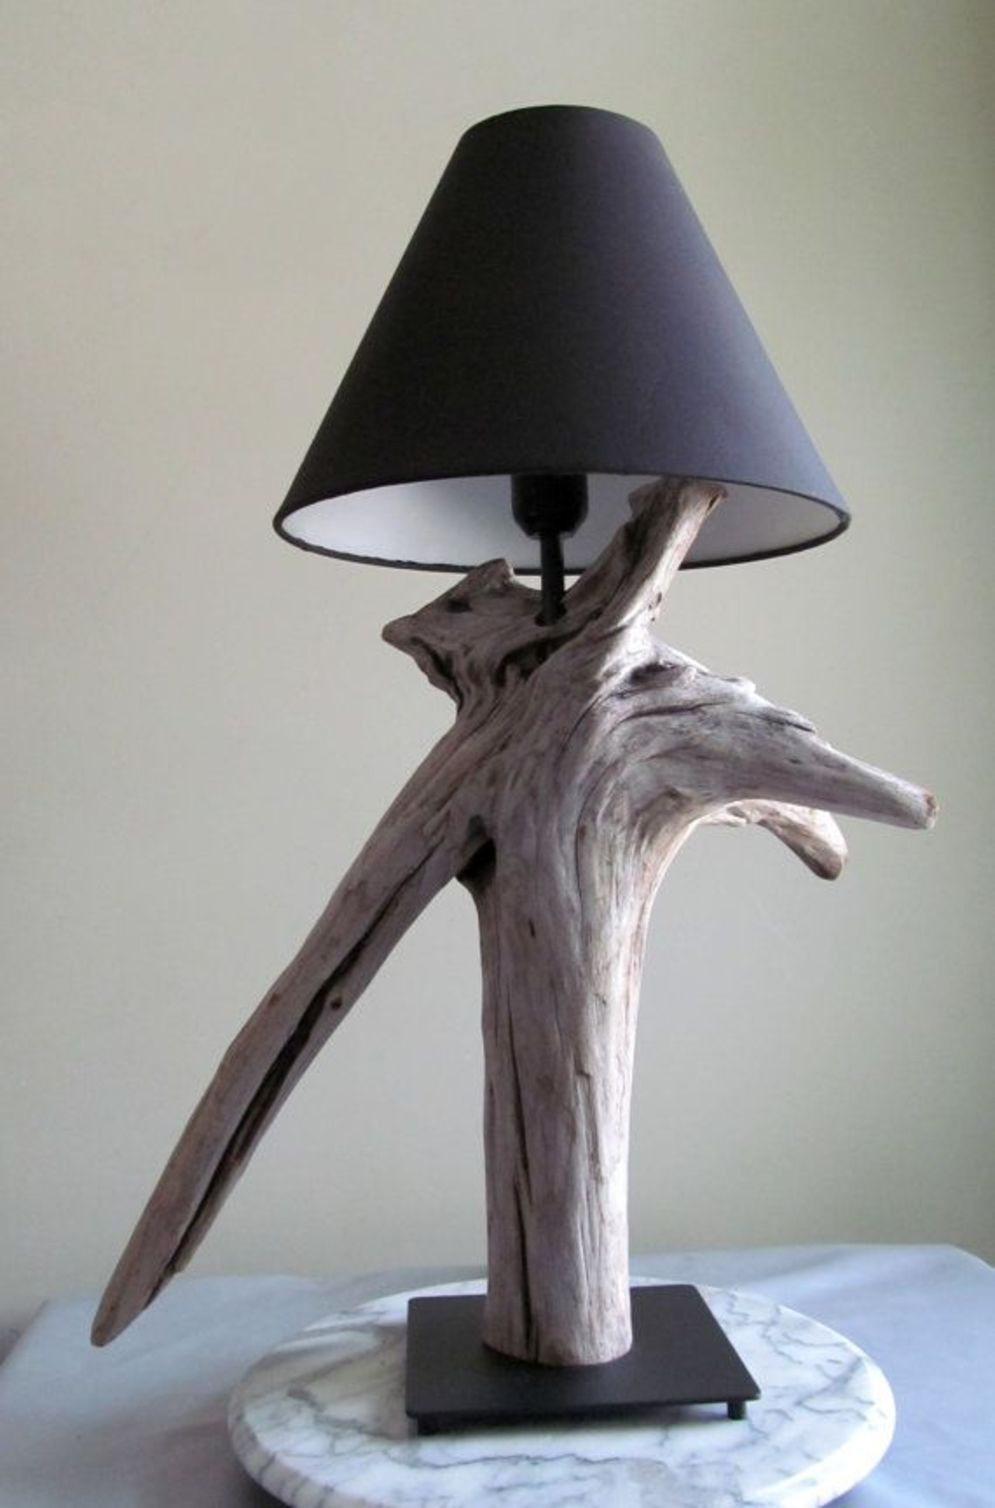 Awesome driftwood lamp stands giving authentic decoration in natural art style Image 10